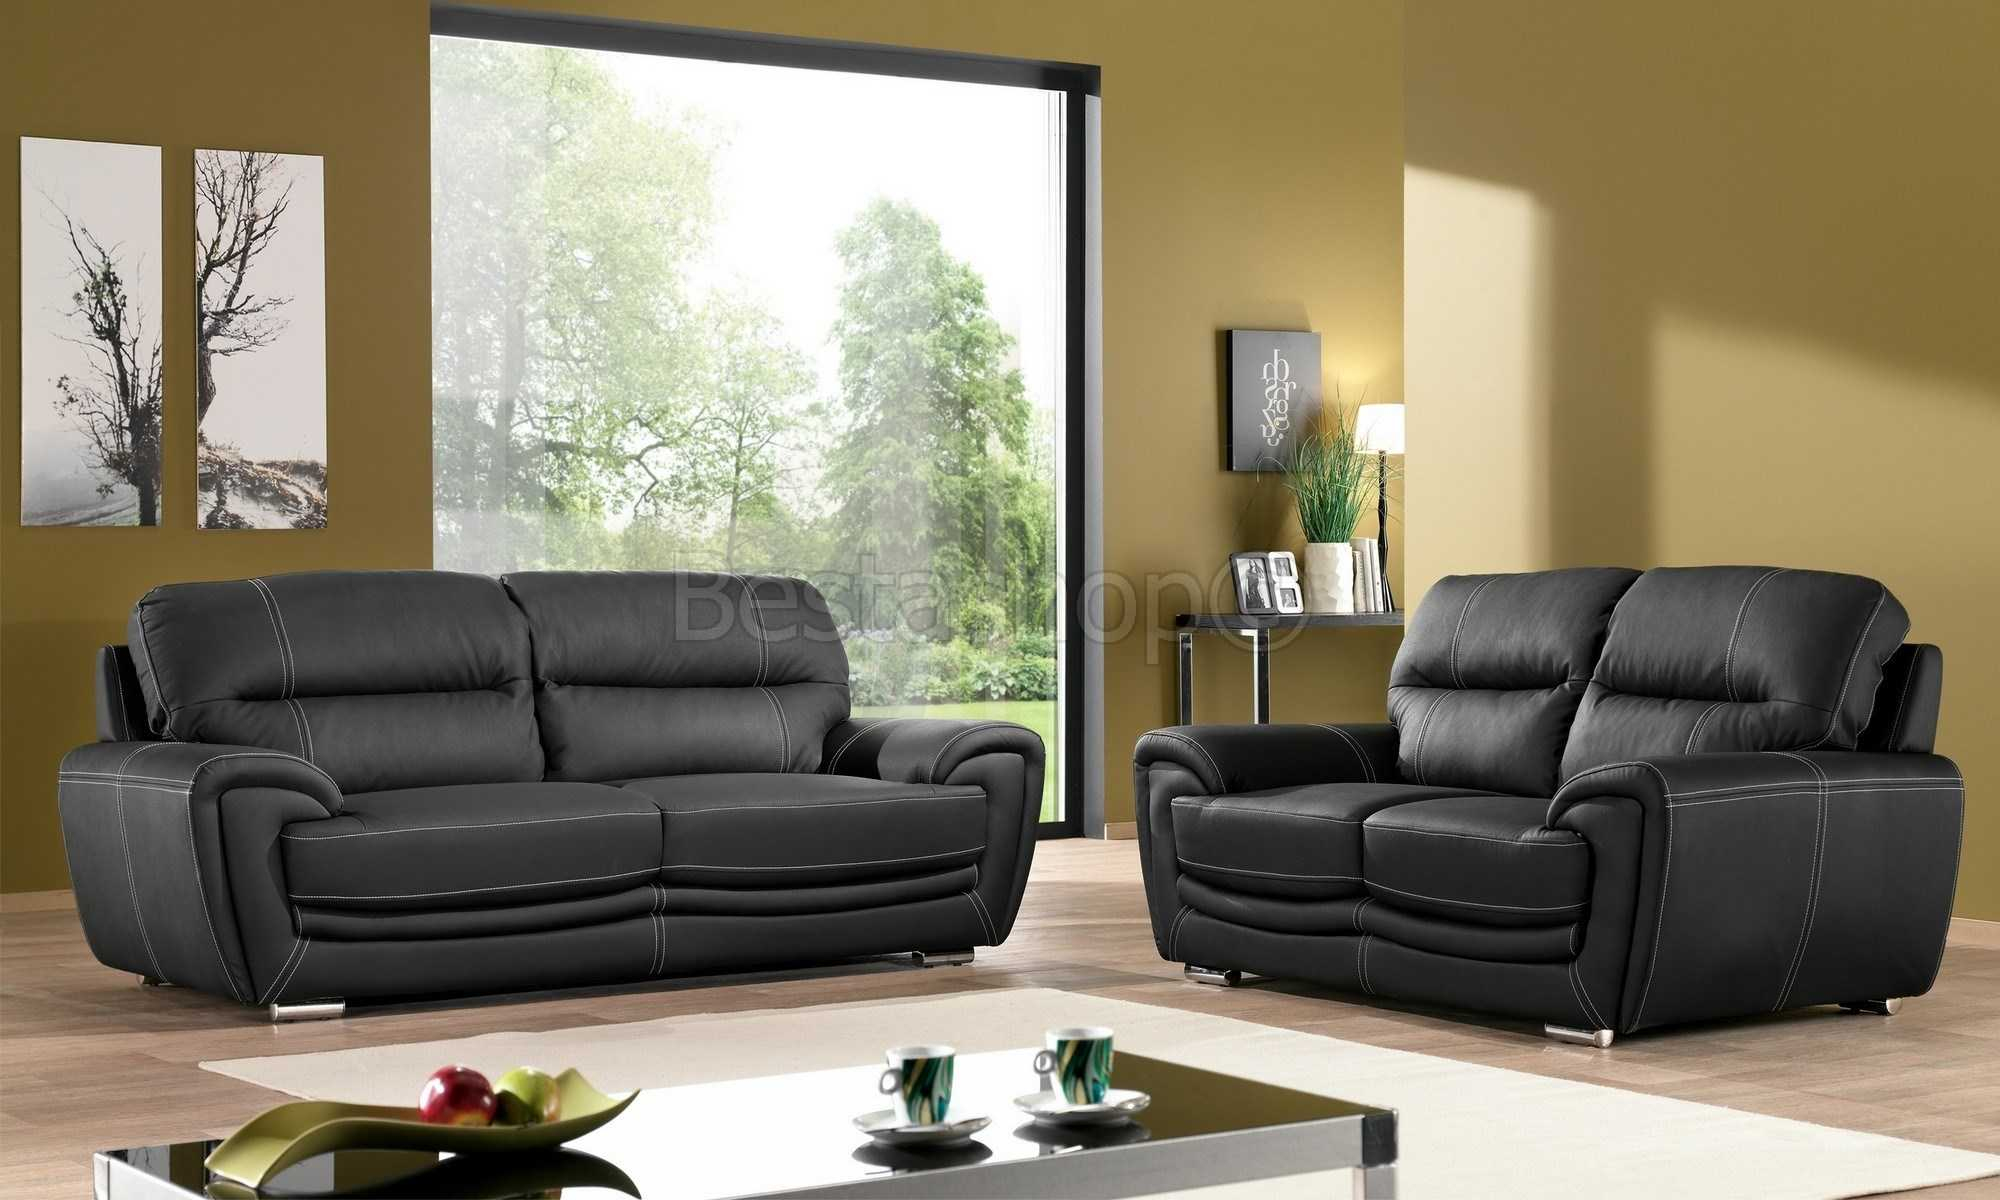 Canapé Convertible Cdiscount Beau Collection Canap Convertible 3 Places Conforama 33 Canape Marina Luxe Lit 28